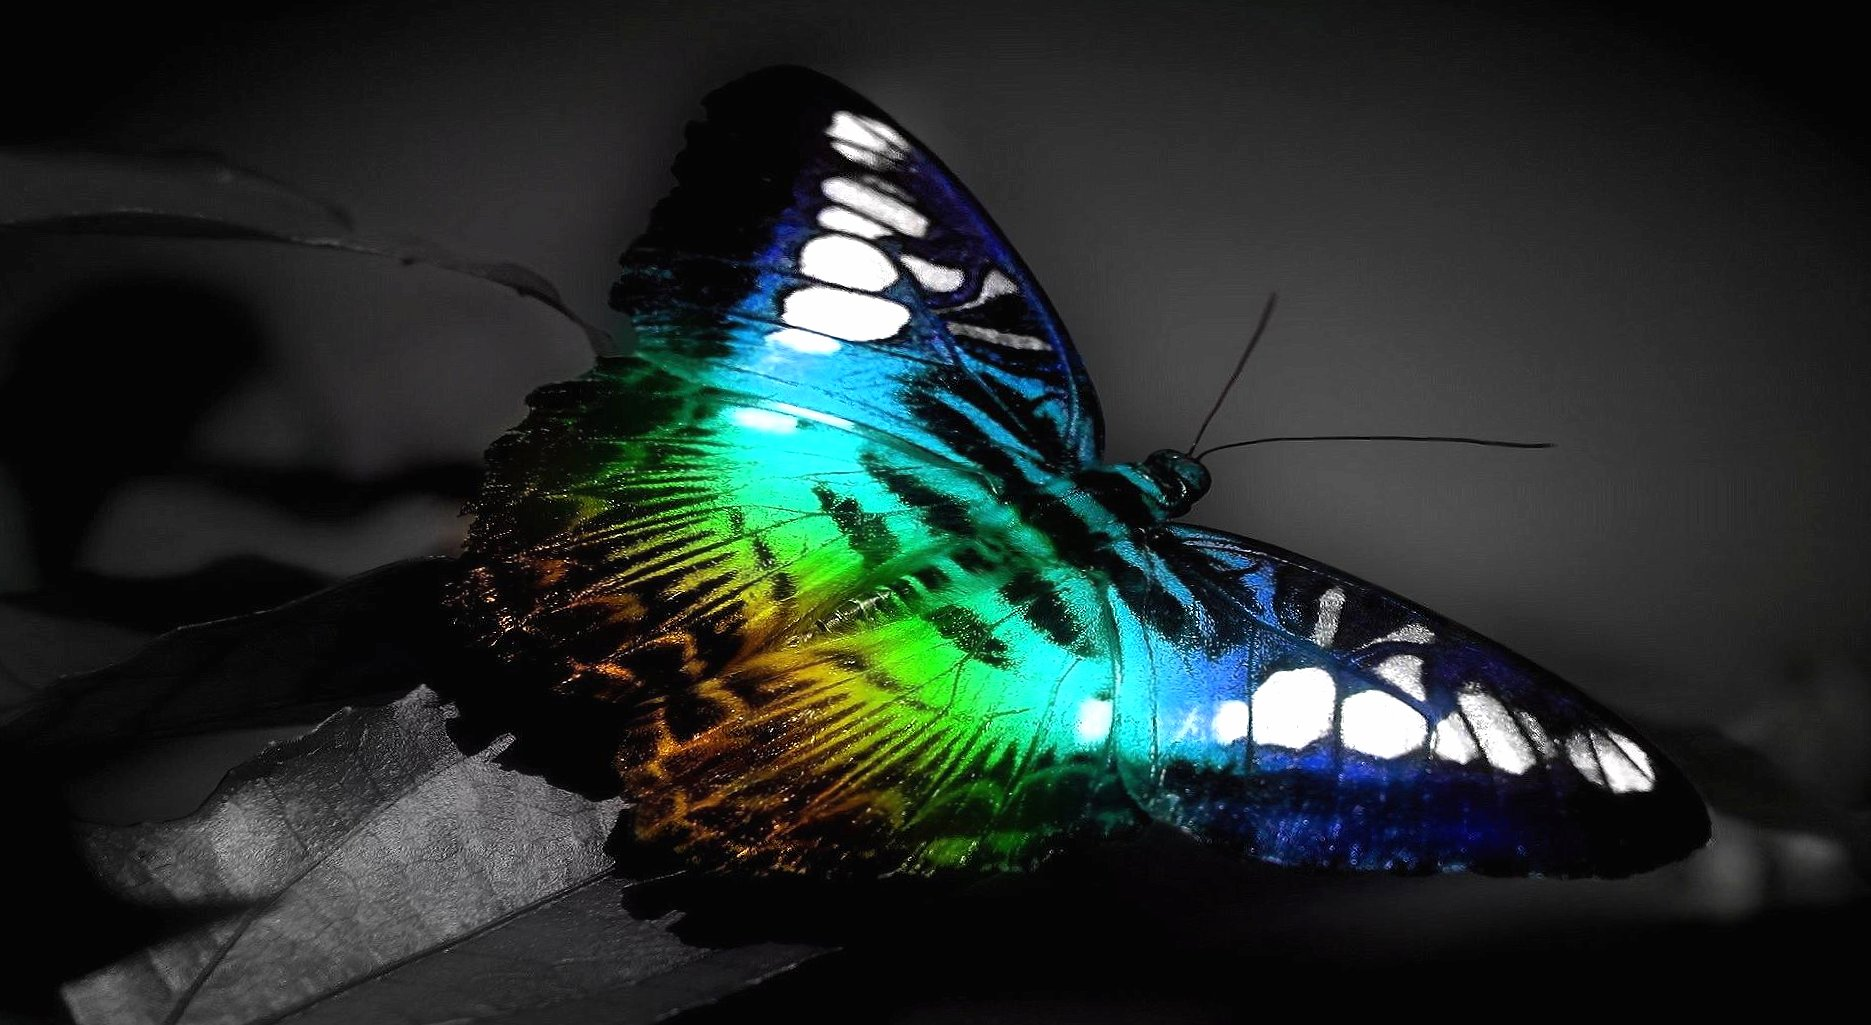 Butterfly fullcolour at 1600 x 1200 size wallpapers HD quality